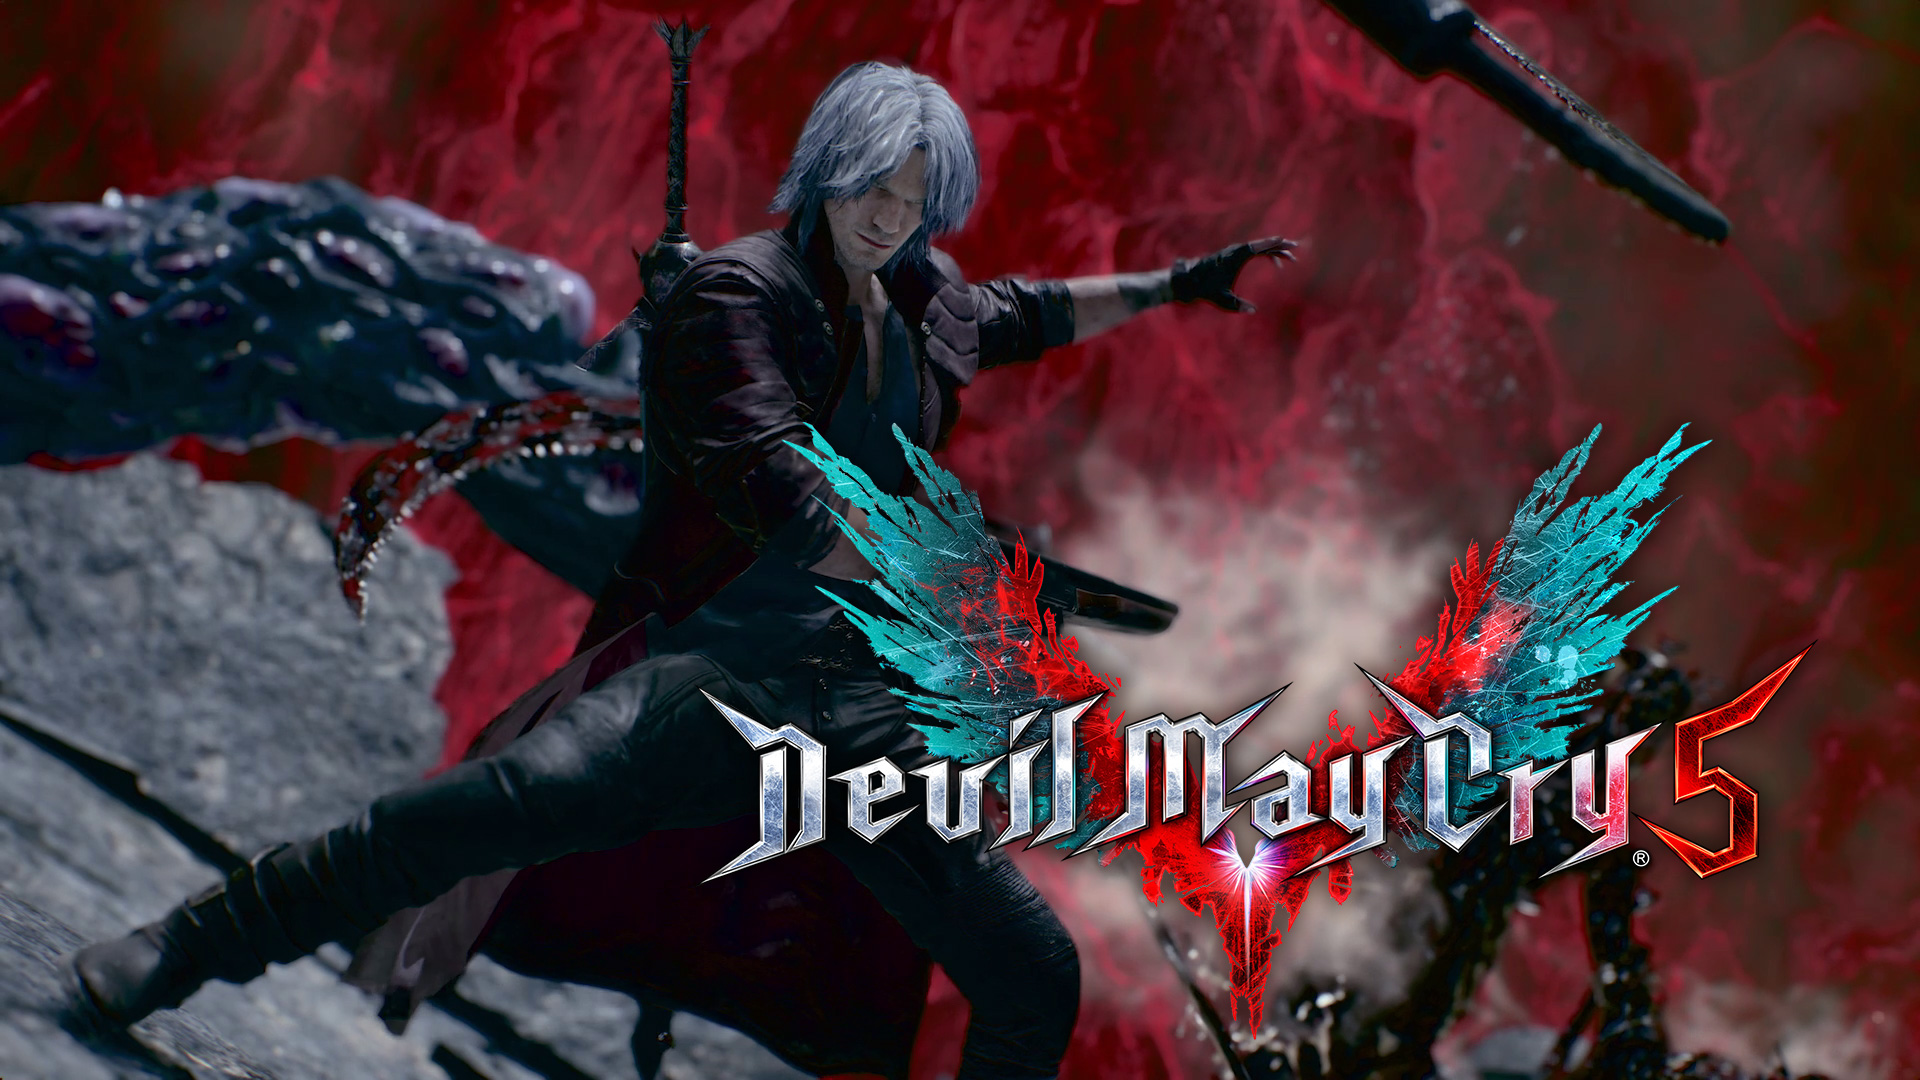 Interviews With Monster Girls Wallpaper Devil May Cry 5 Datamining Hints At Matchmaking 4th